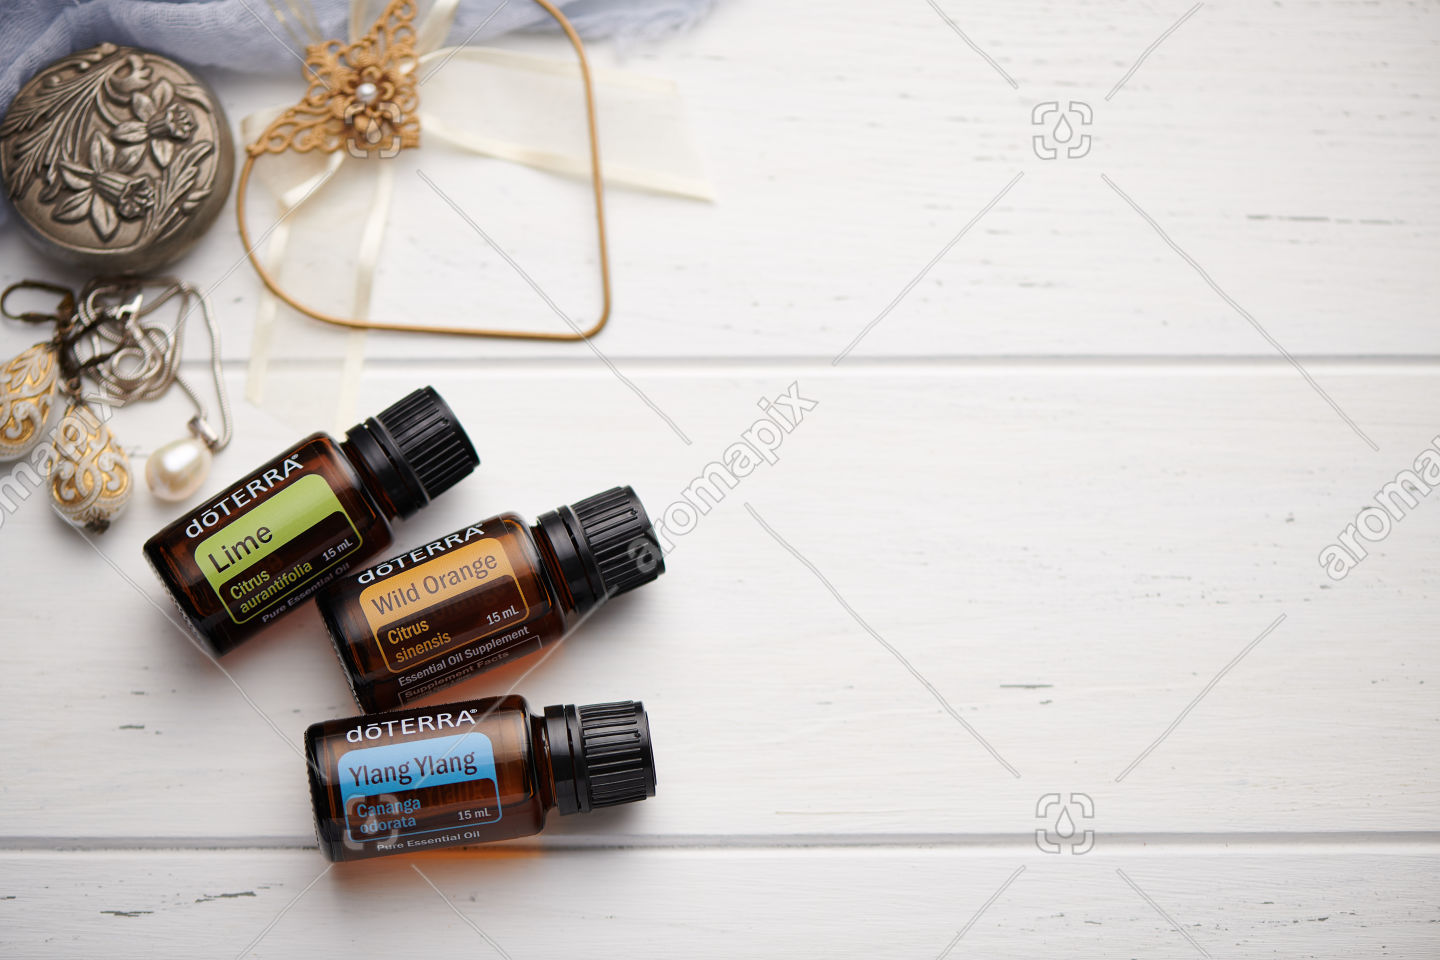 doTERRA Lime, Wild Orange and Ylang Ylang on white vintage wooden background